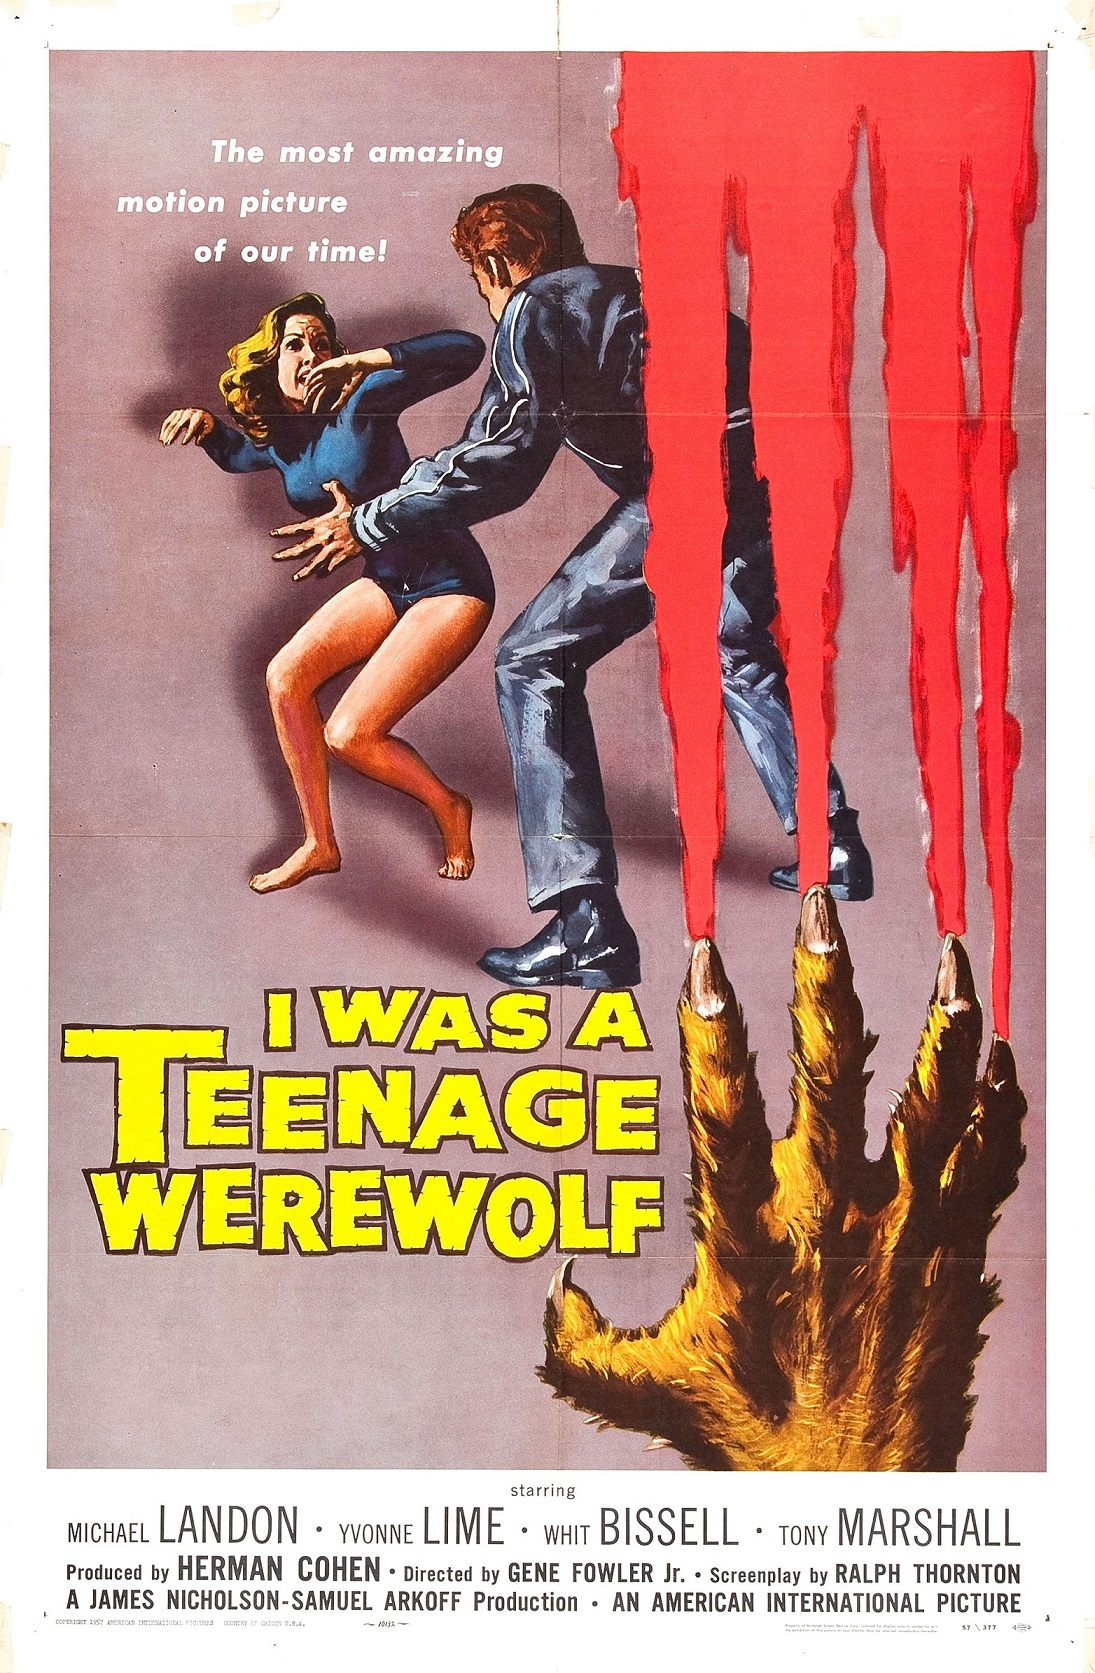 i-was-a-teenage-werewolf-1kite44i-was-a-teenage-werewolf-1i-was-a-teenage-werewolf-17i-was-a-teenage-werewolf-55i-was-a-teenage-werewolf-11